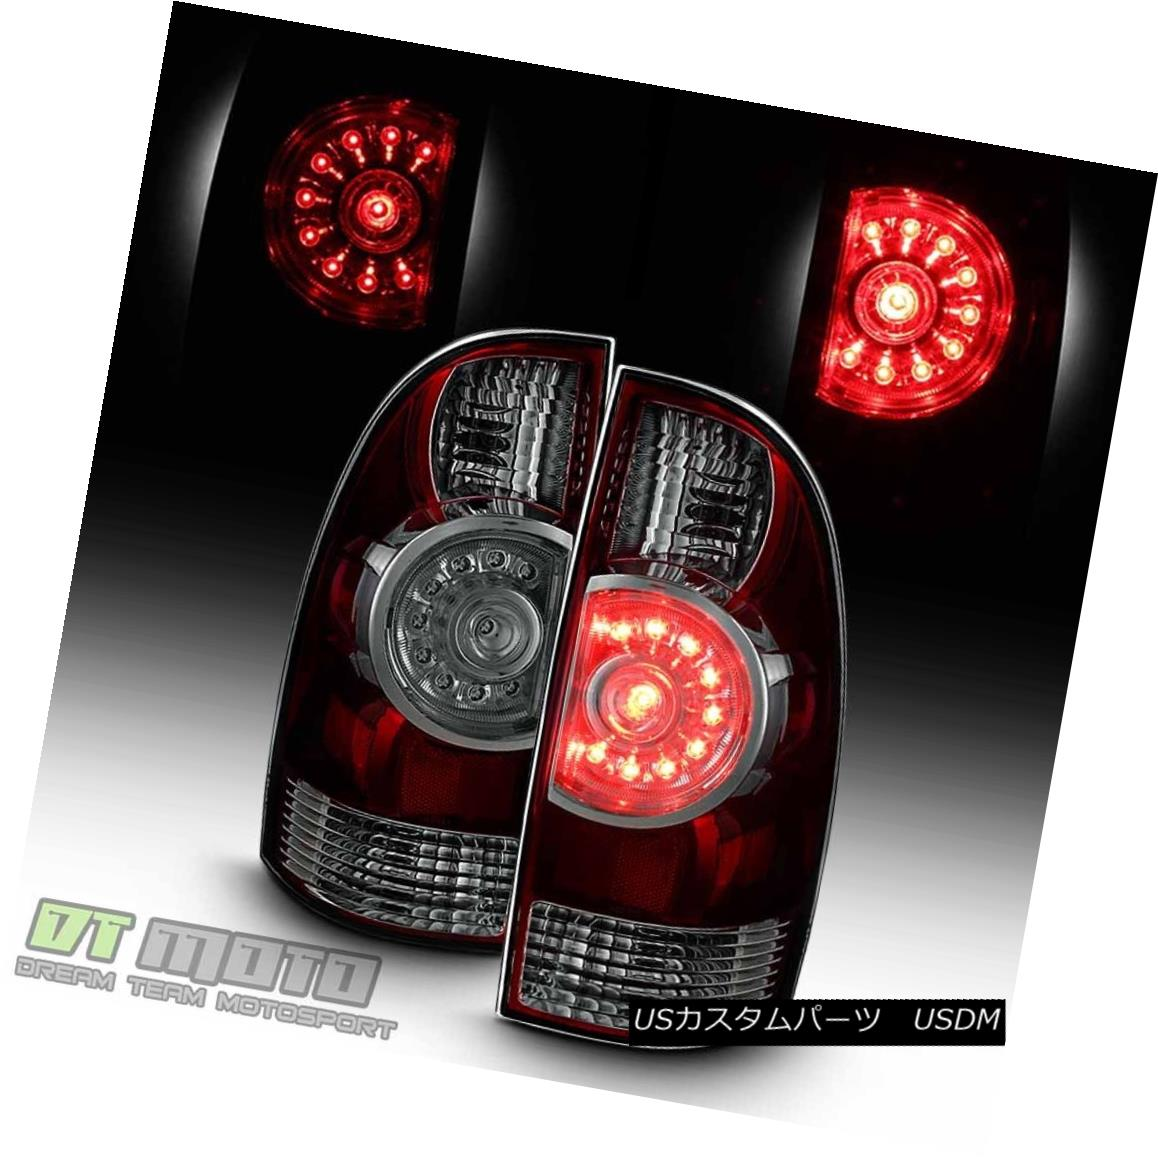 テールライト [Smoke Lens] 2005-2015 Toyota Tacoma PreRunner TRD LED Tail Lights Lamps 05-15 [スモークレンズ] 2005-2015 Toyota Tacoma PreRunner TRD LEDテールライトランプ05-15